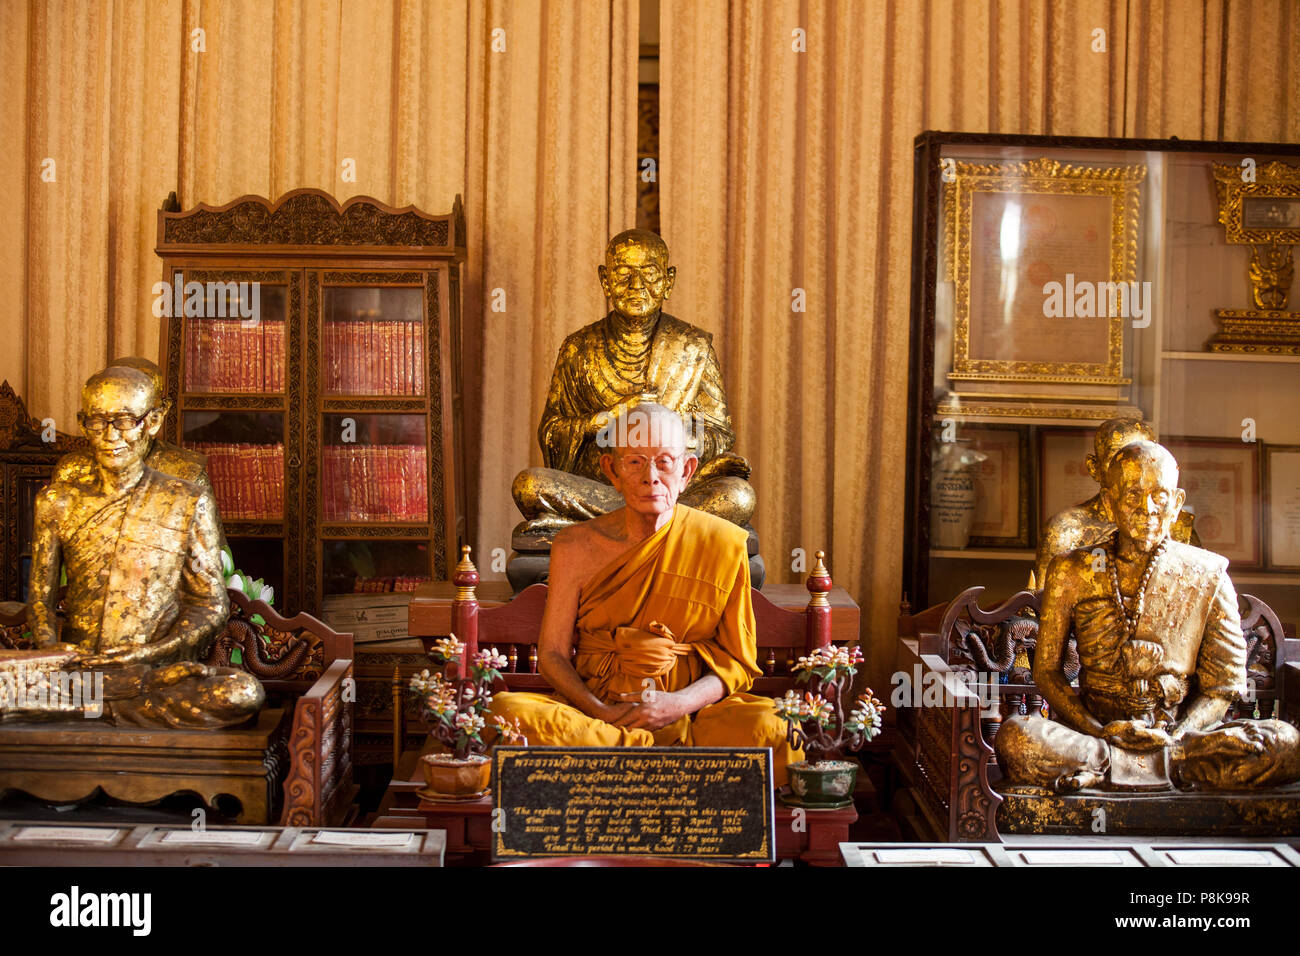 An elderly male monk meditating in a temple in Thailand. - Stock Image